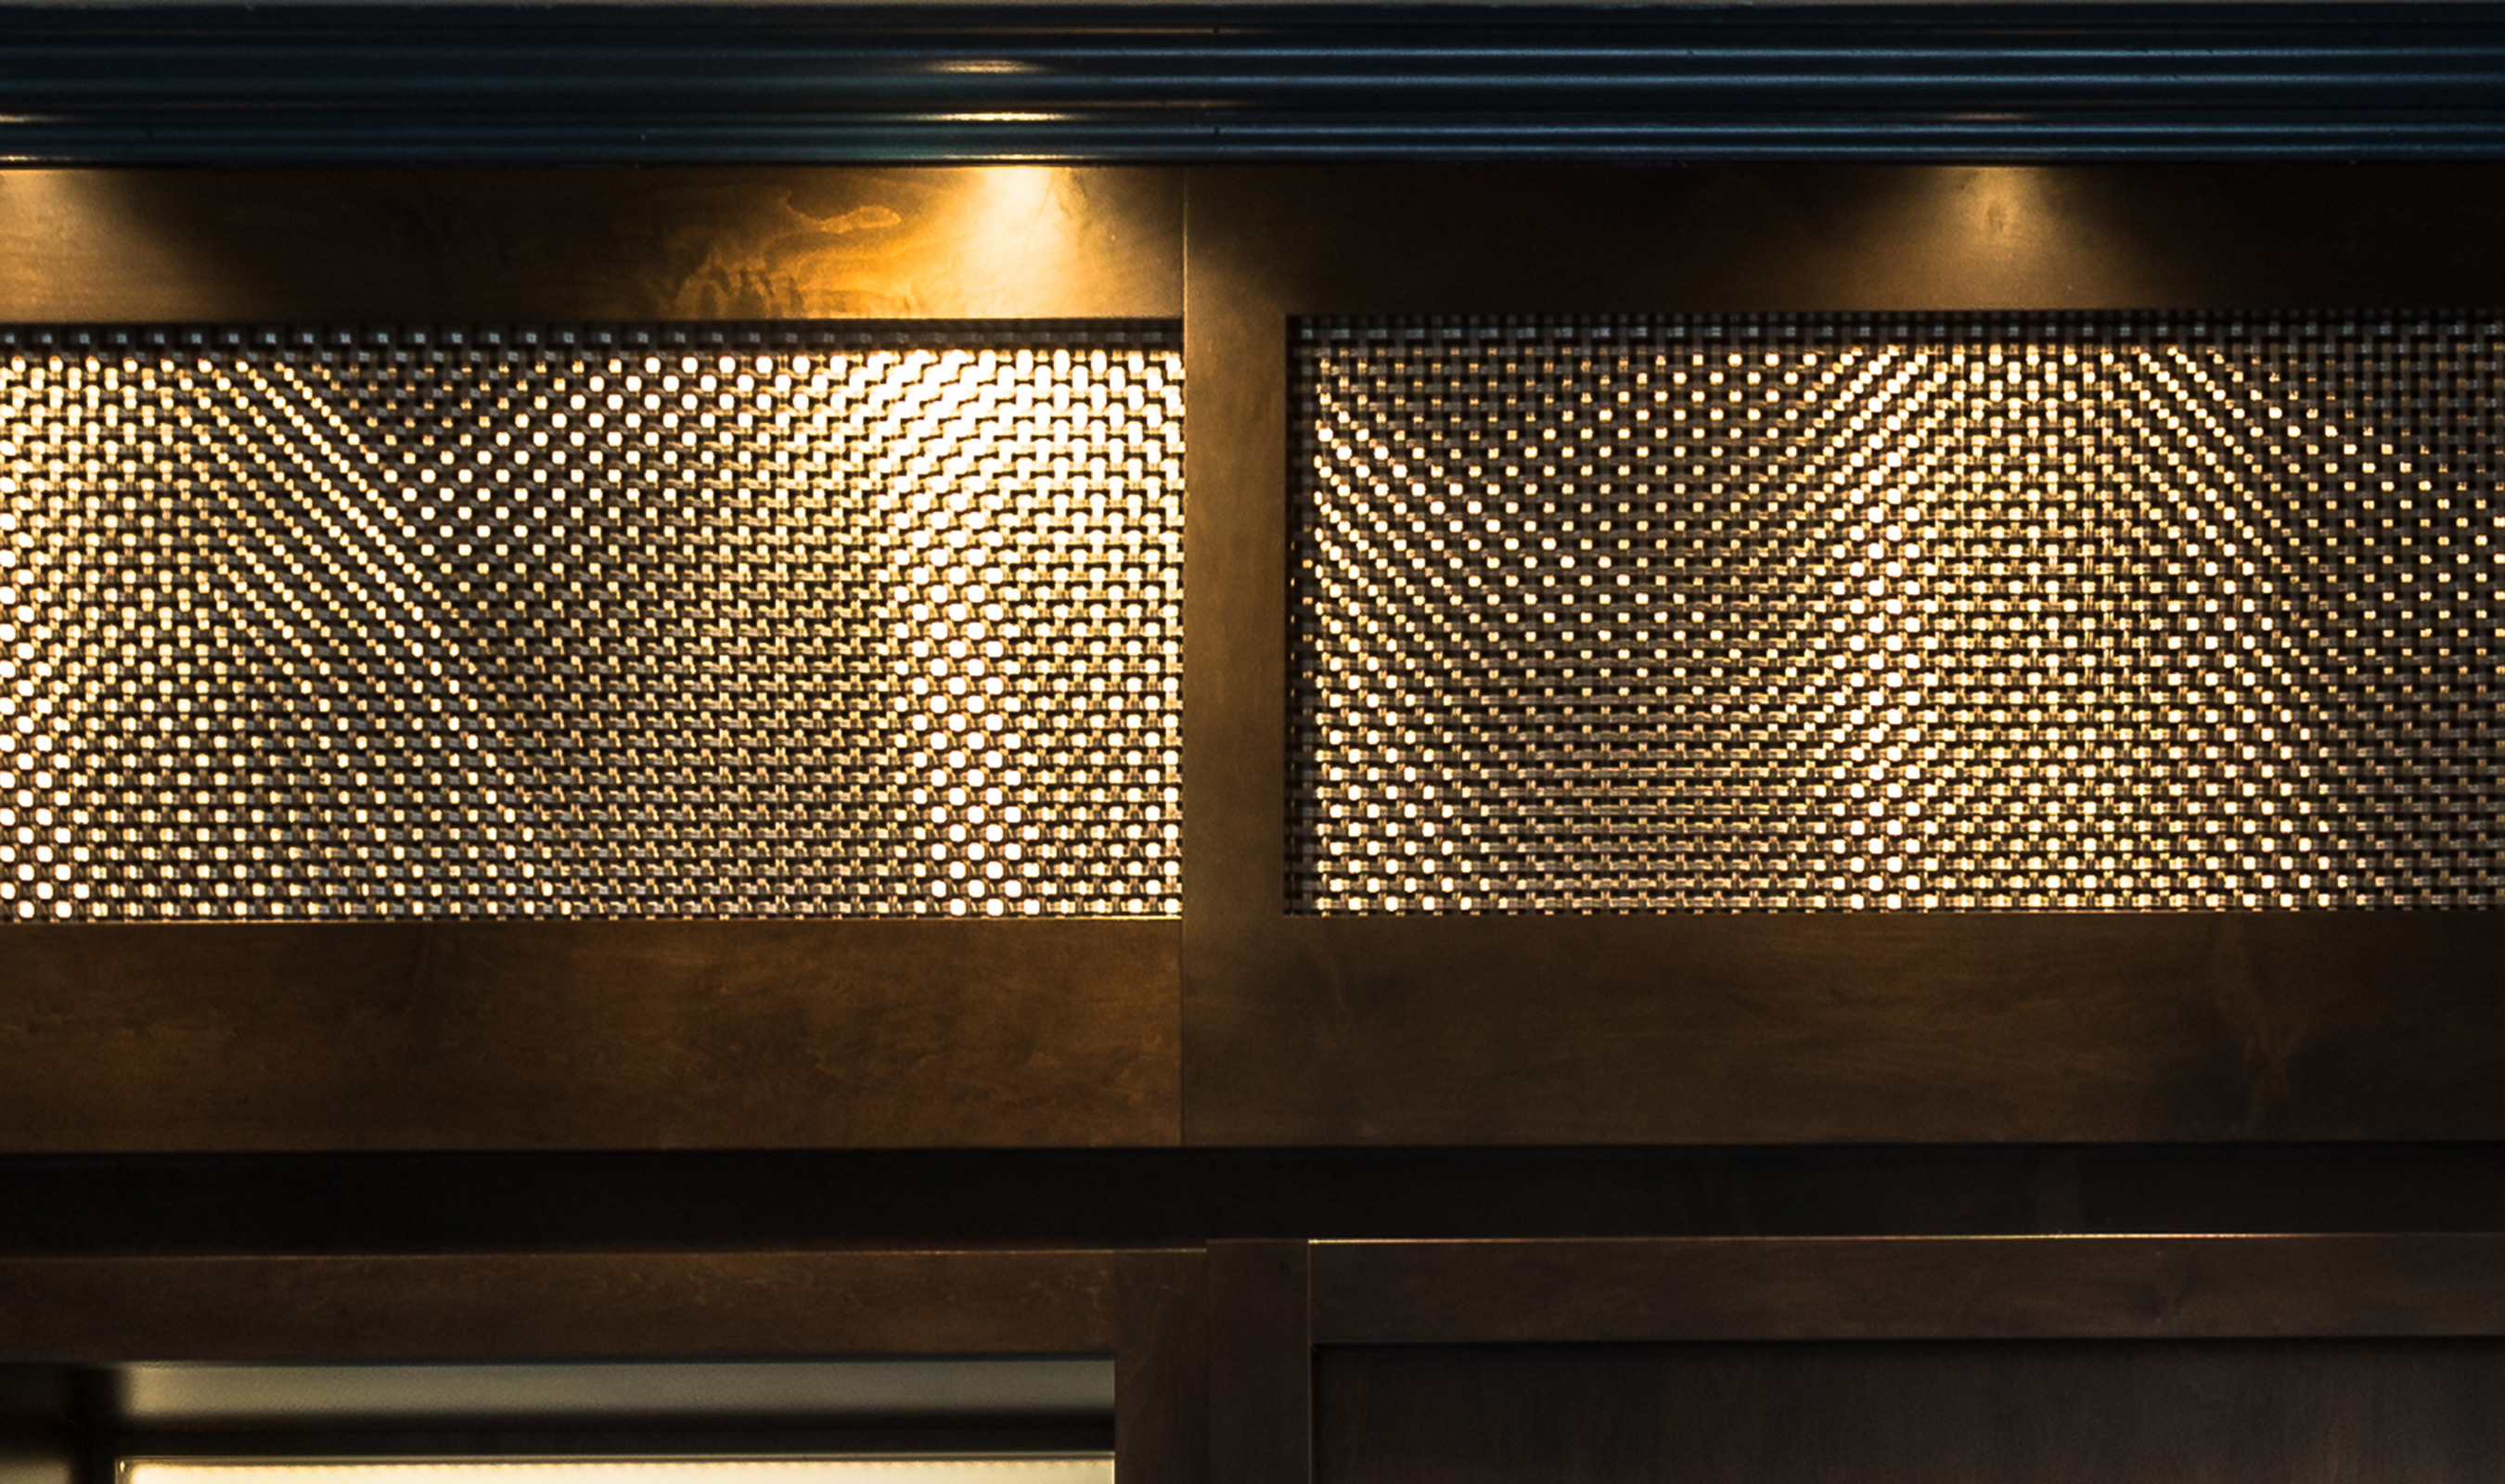 Metal against wood is a timeless accent, drawing out the beauty and warmth of wood with the coolness of stainless steel.